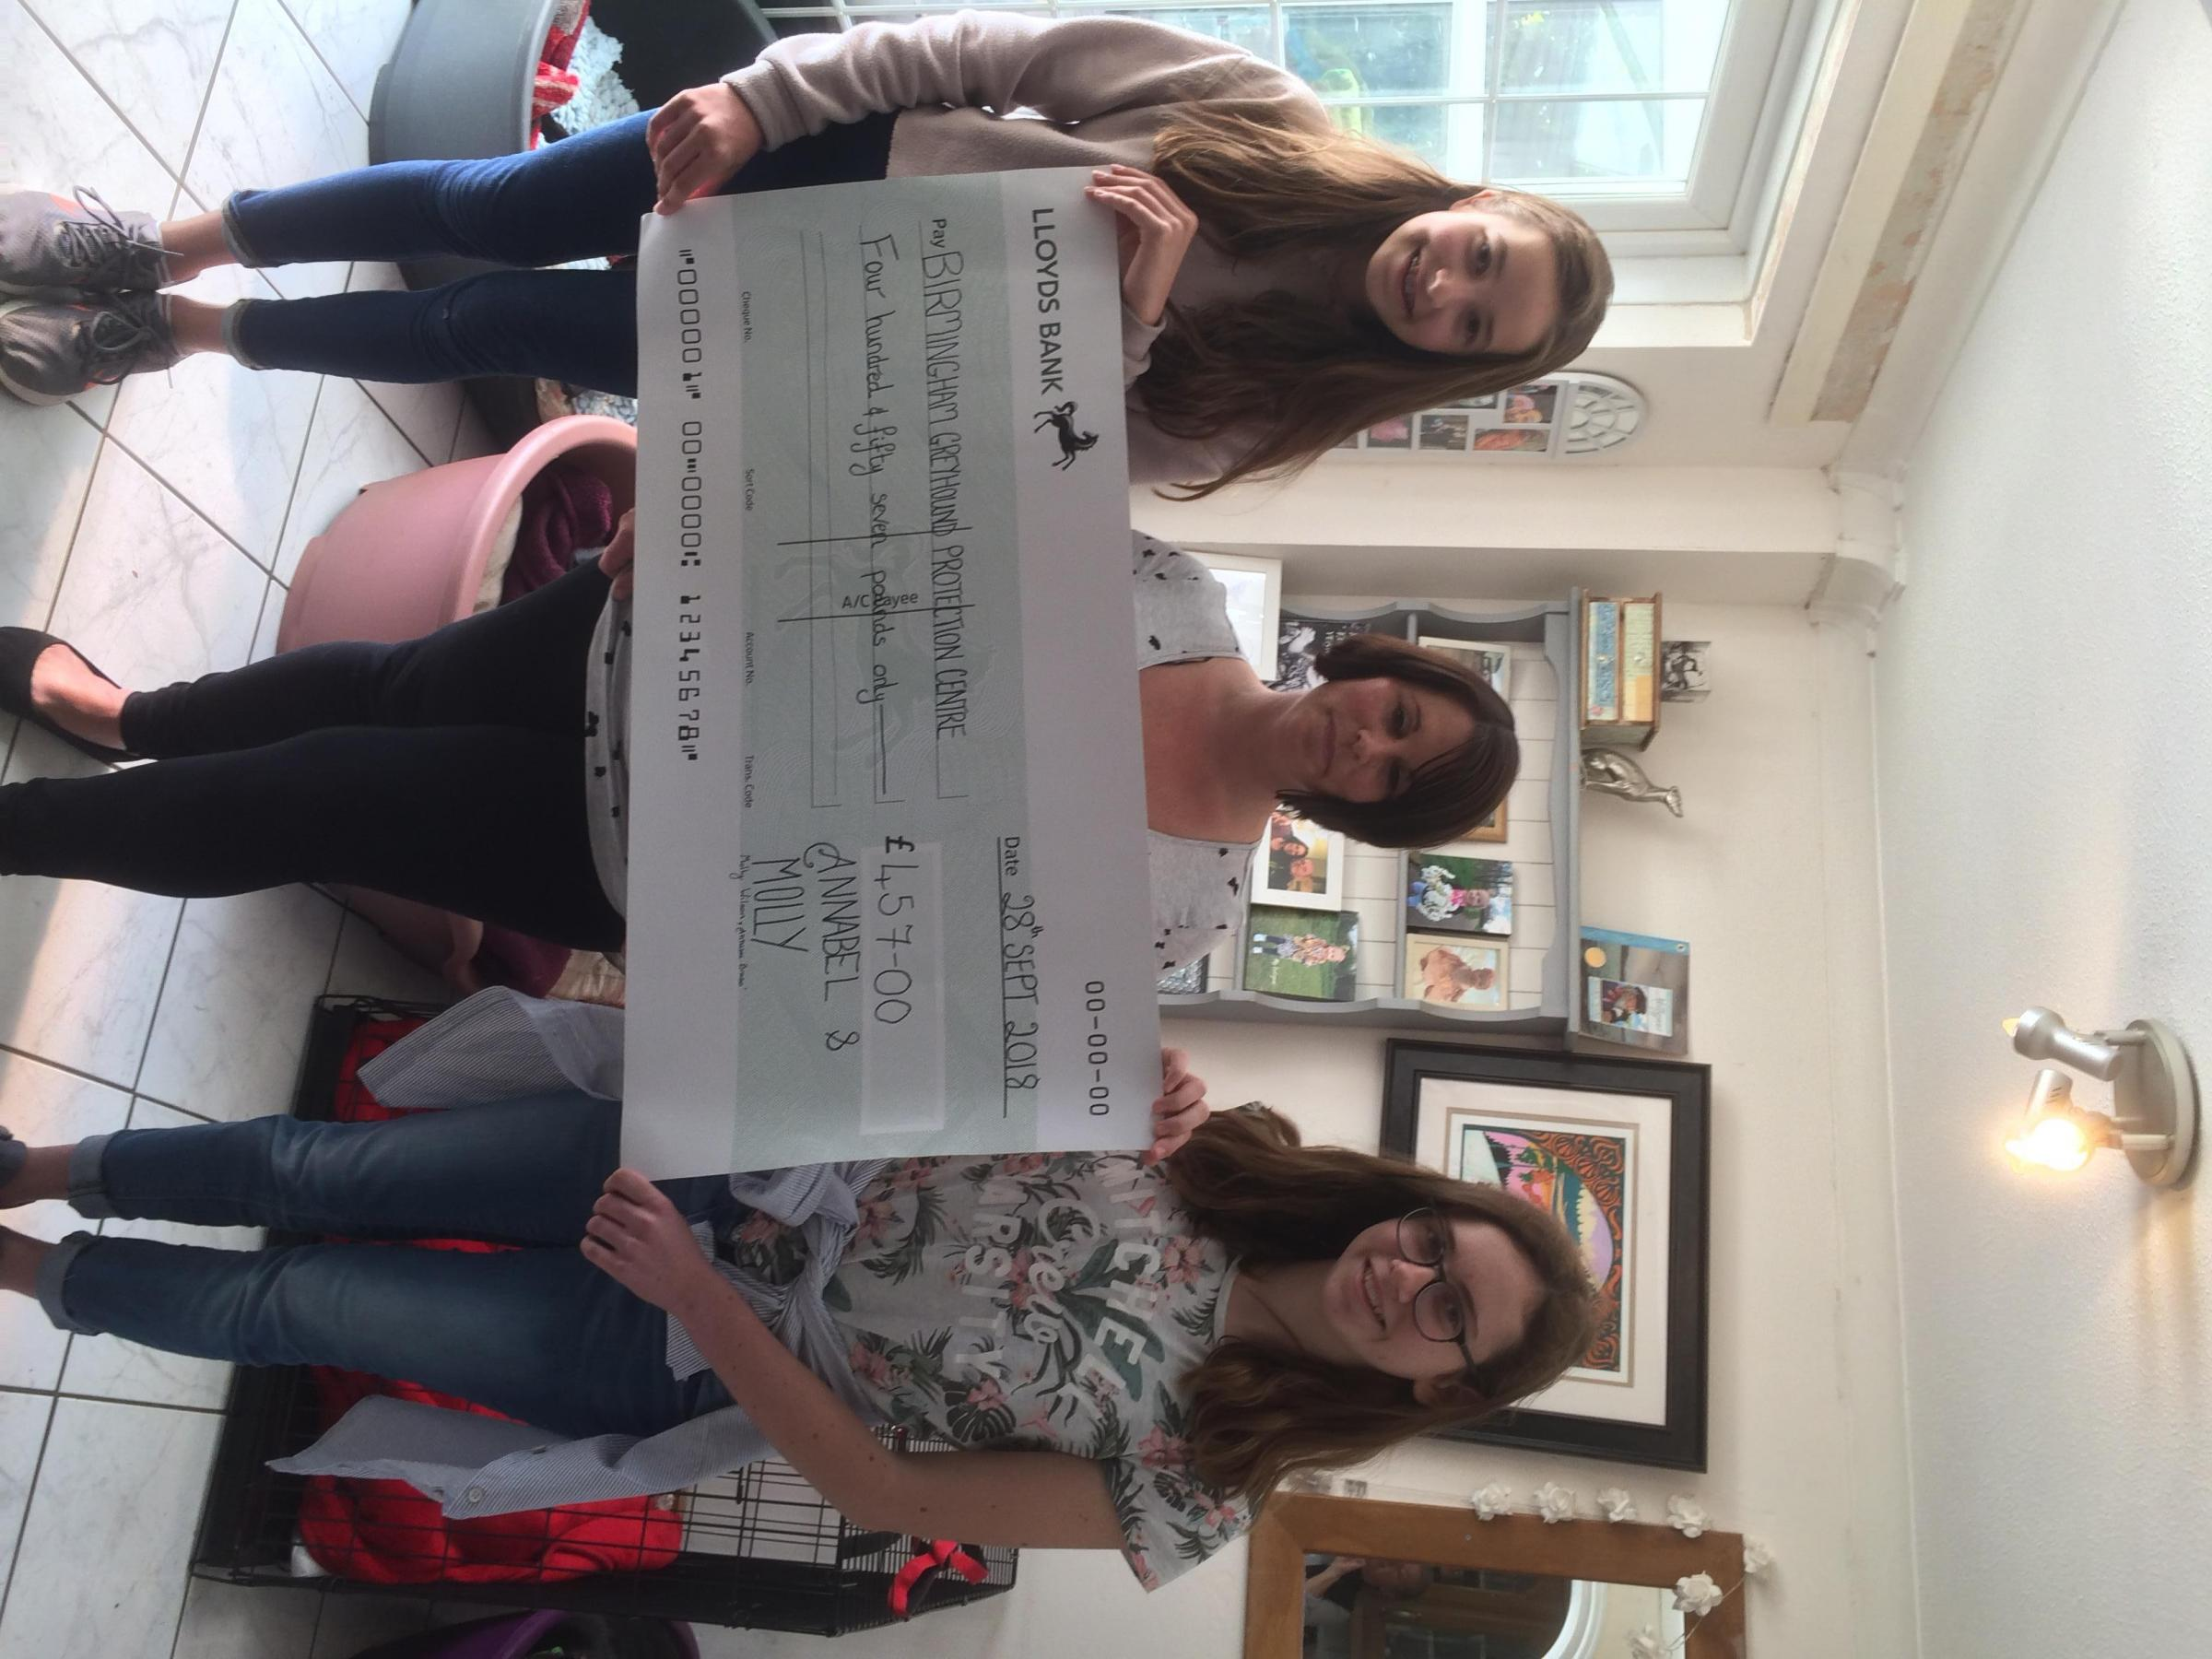 PROUD: The cheque for £457 was presented to Kerry Elliman, founder of 'Birmingham Greyhound Protection/Candy Cane Rescue